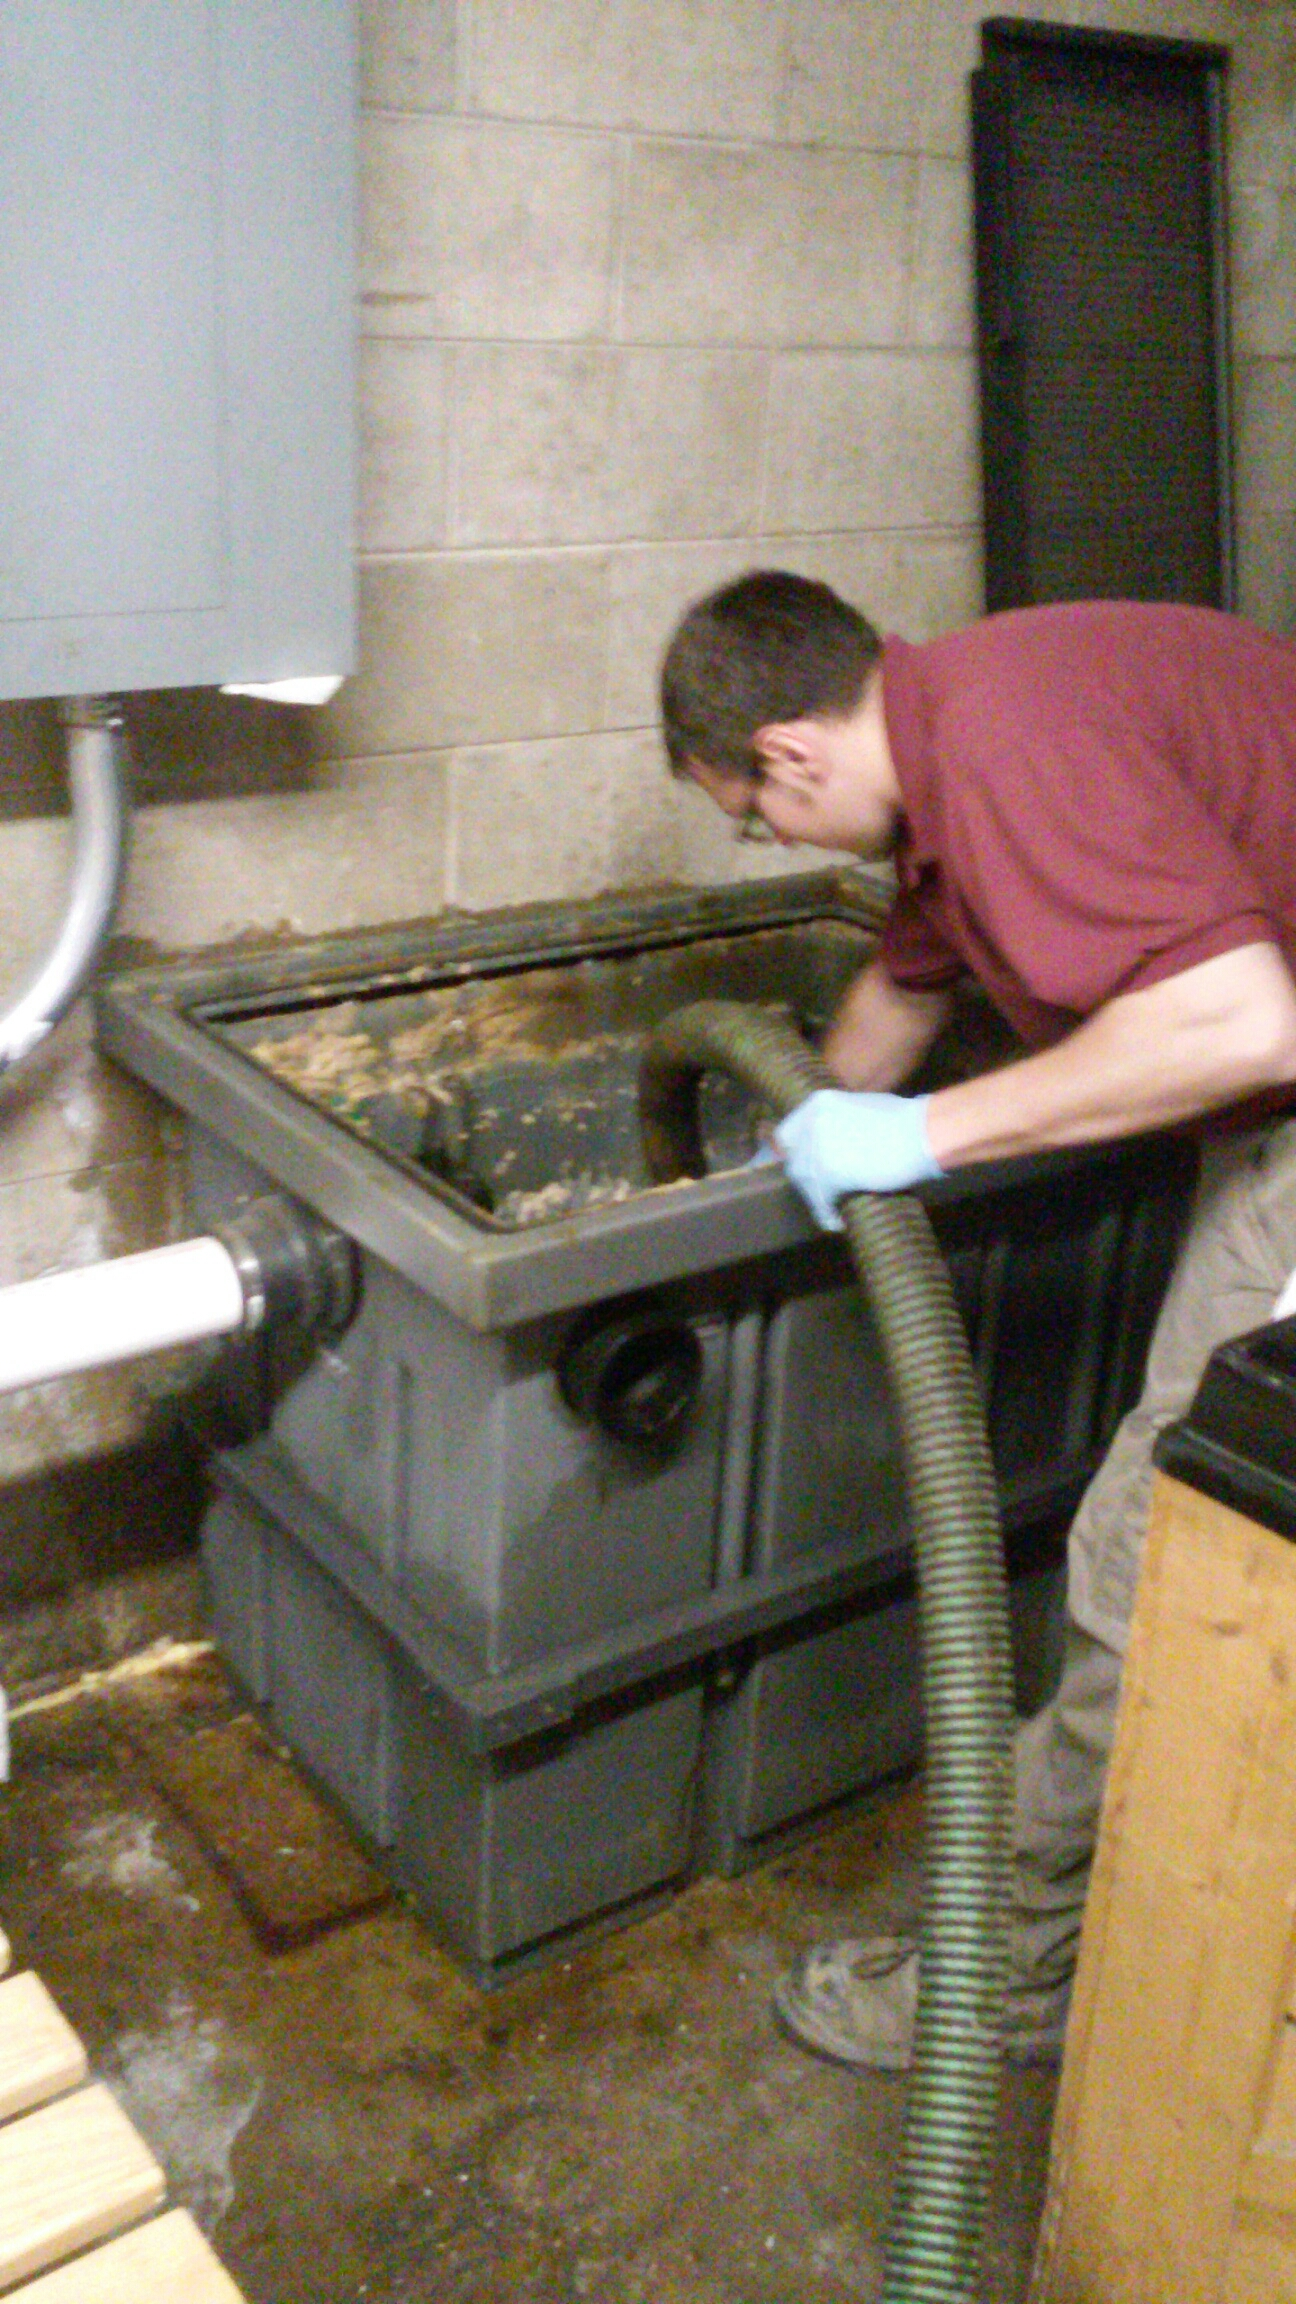 Spring Valley, IL - Cleaning grease trap